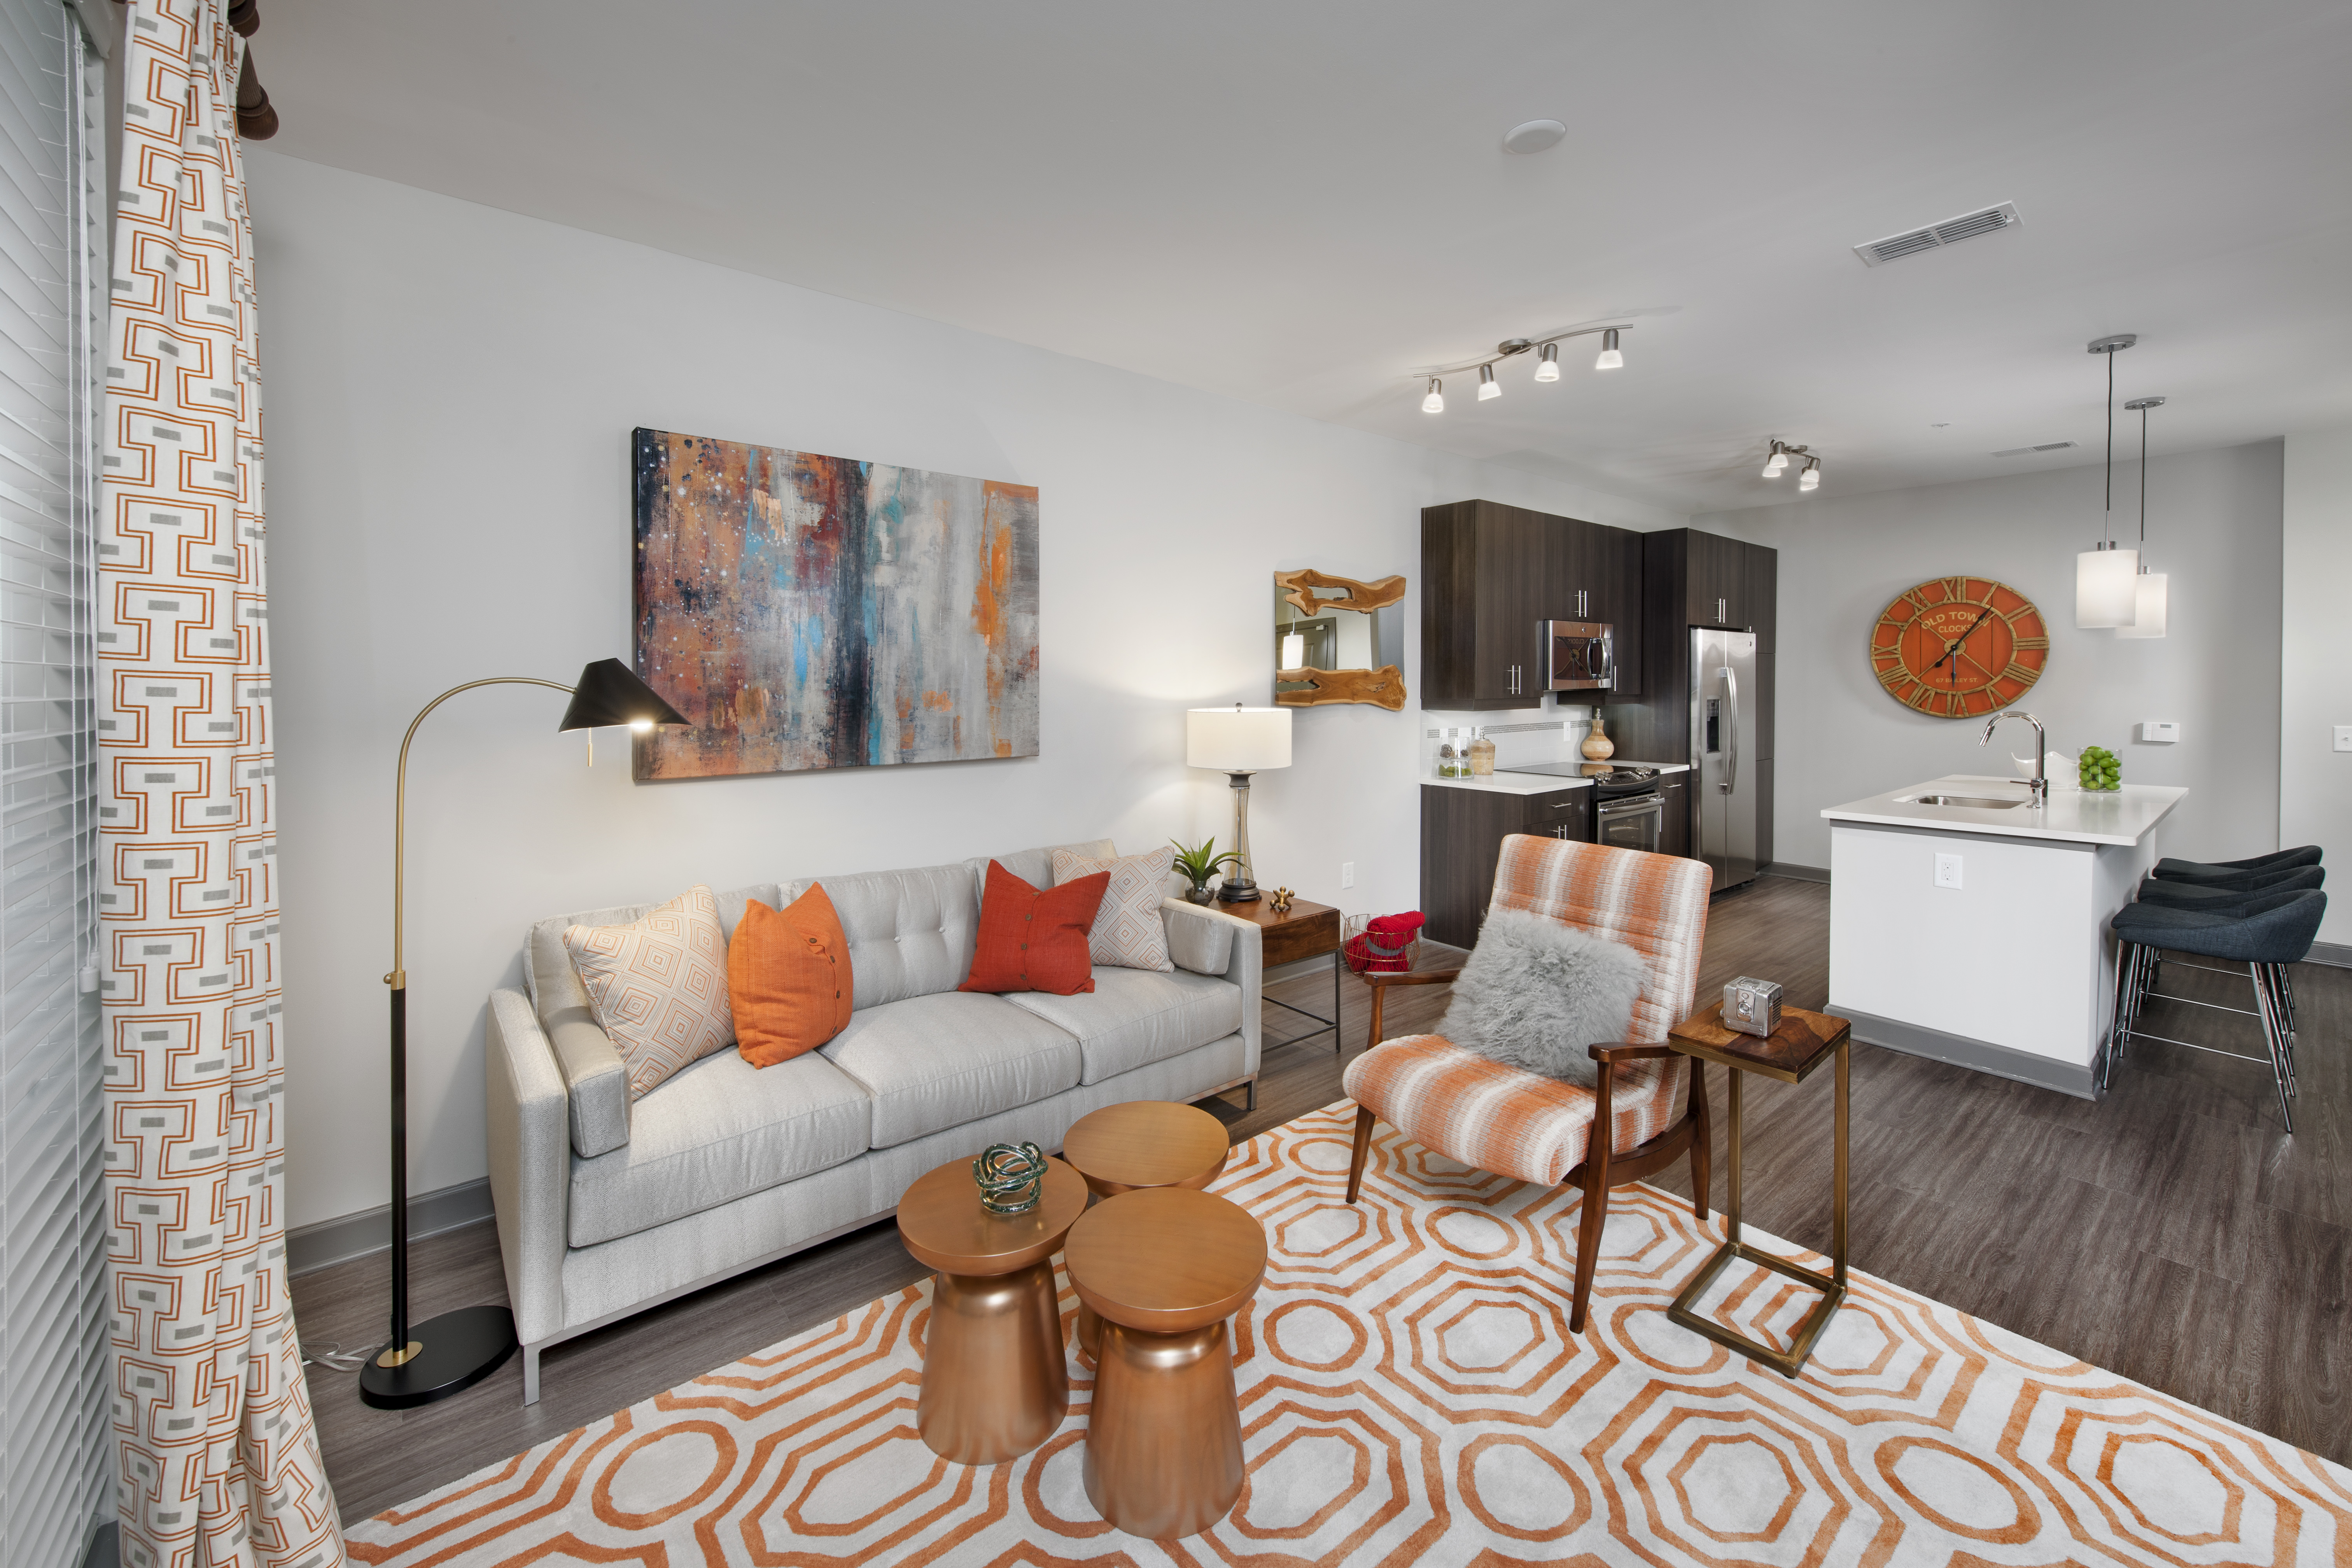 If You Would Rather Spend Your Friday Night Out And About Camden Buckhead Square Is Walking Distance To The New Atlanta Retail Development